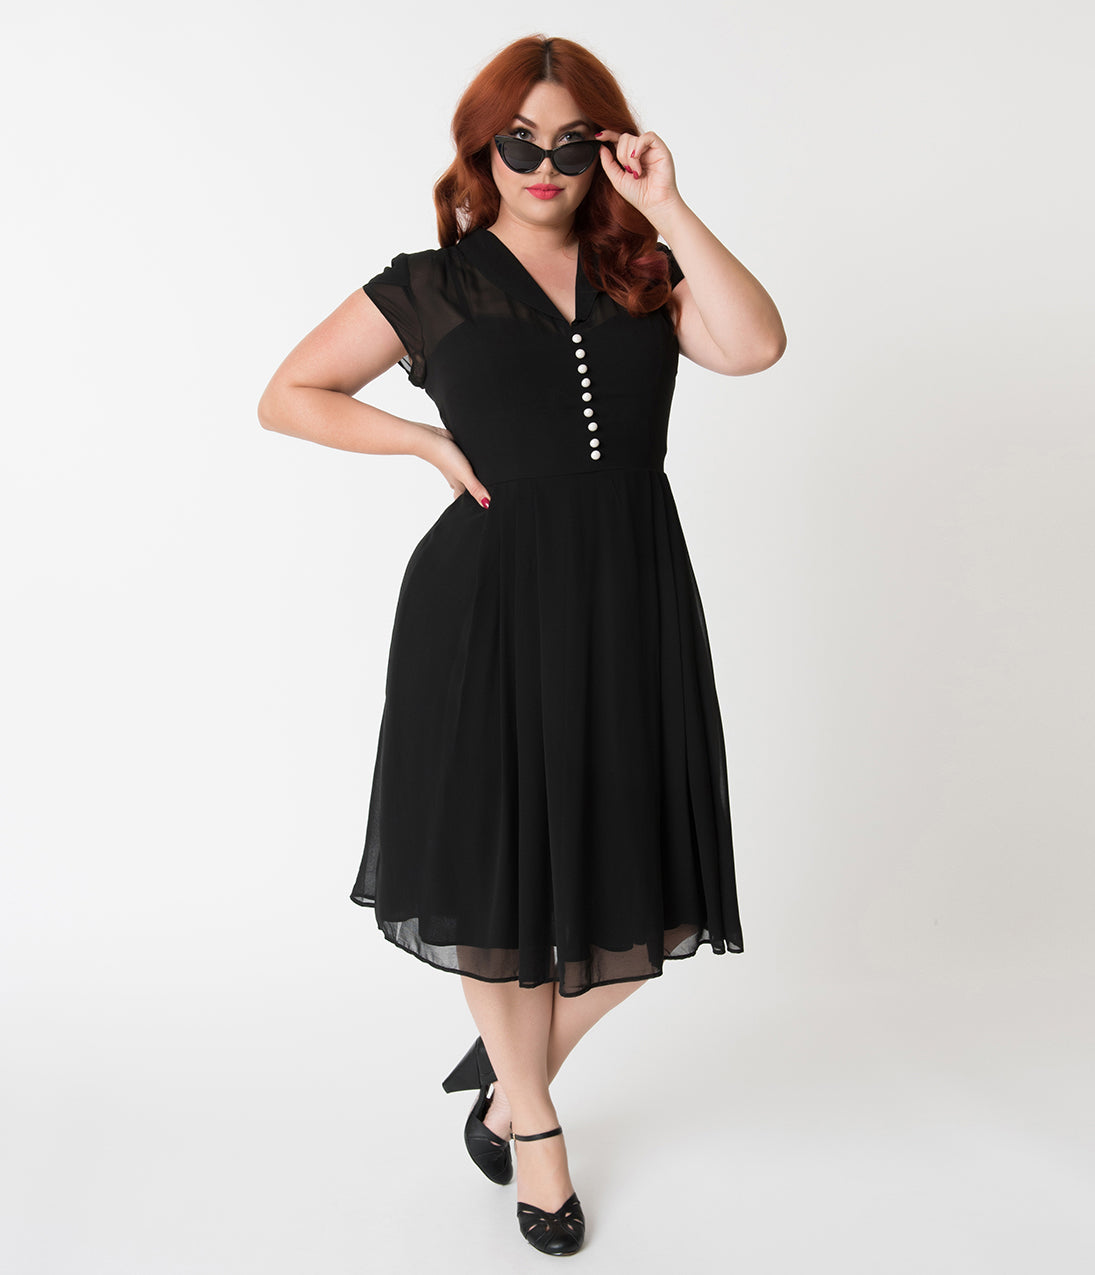 1940s Evening, Prom, Party, Cocktail Dresses & Ball Gowns Hell Bunny Plus Size Black Chiffon Cap Sleeve Paige Flare Dress $92.00 AT vintagedancer.com